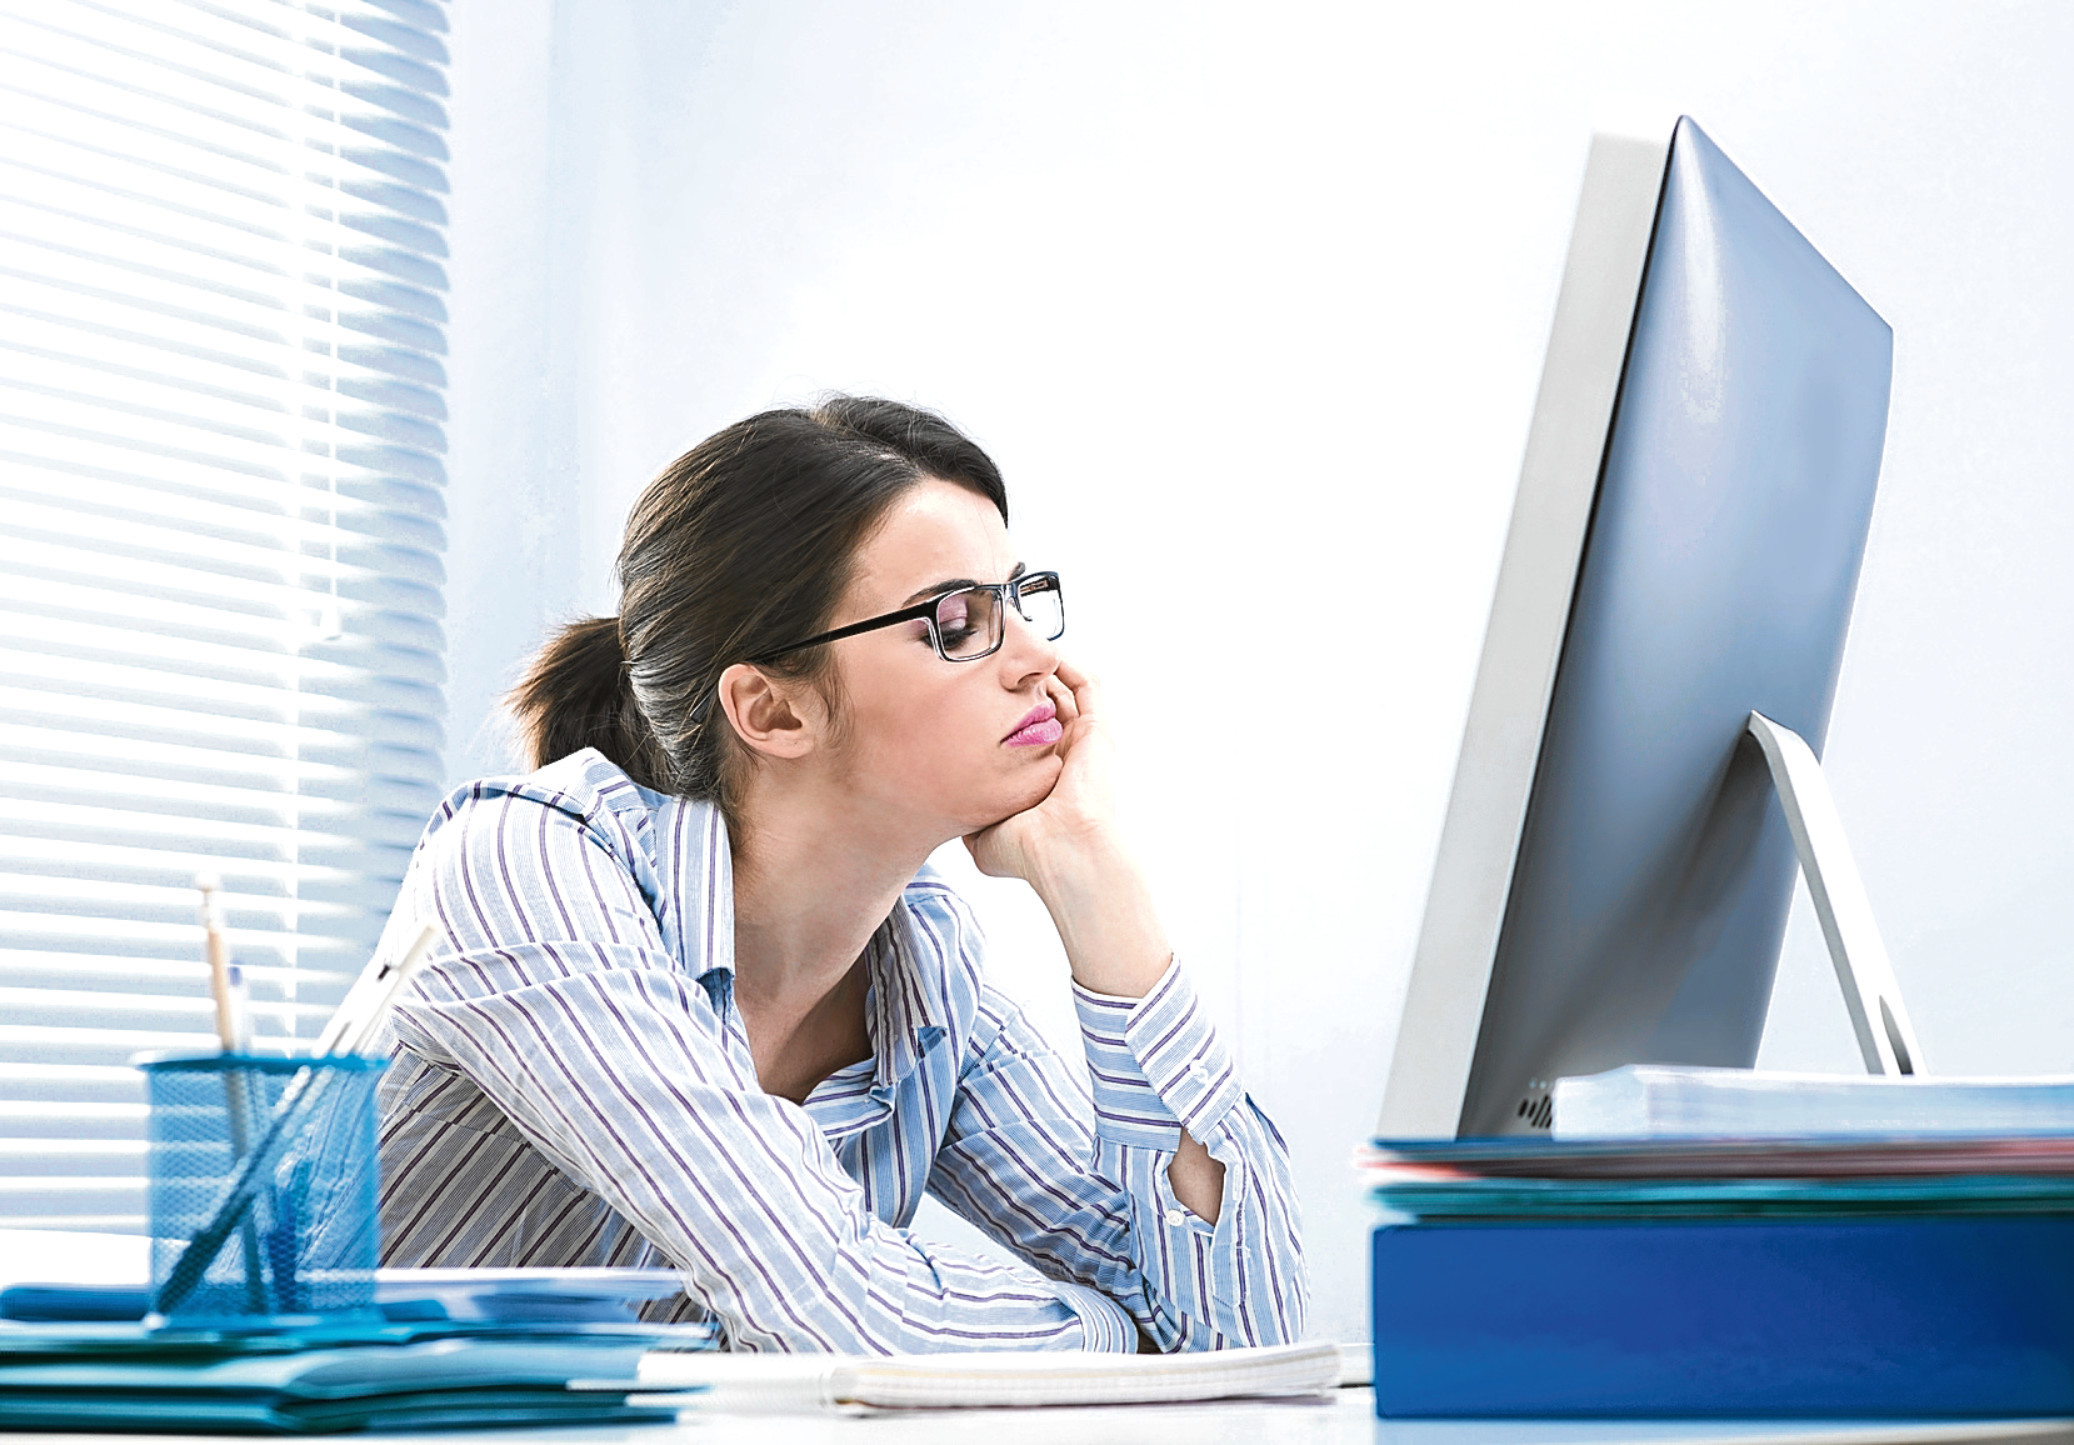 Being bored at work is bad for you (Getty Images)